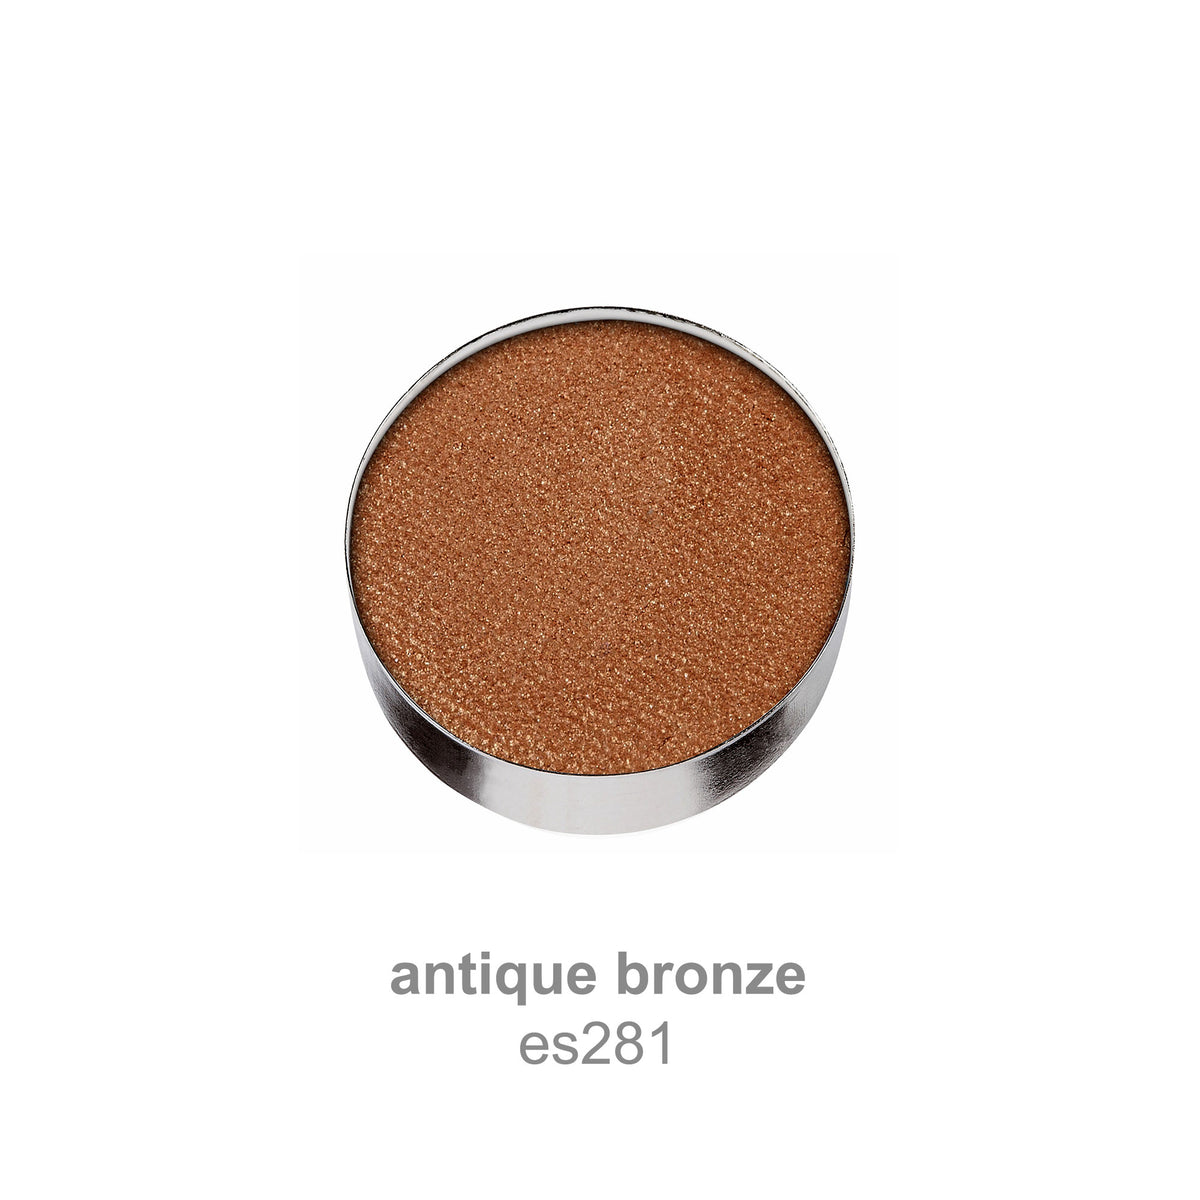 antique bronze (es281)